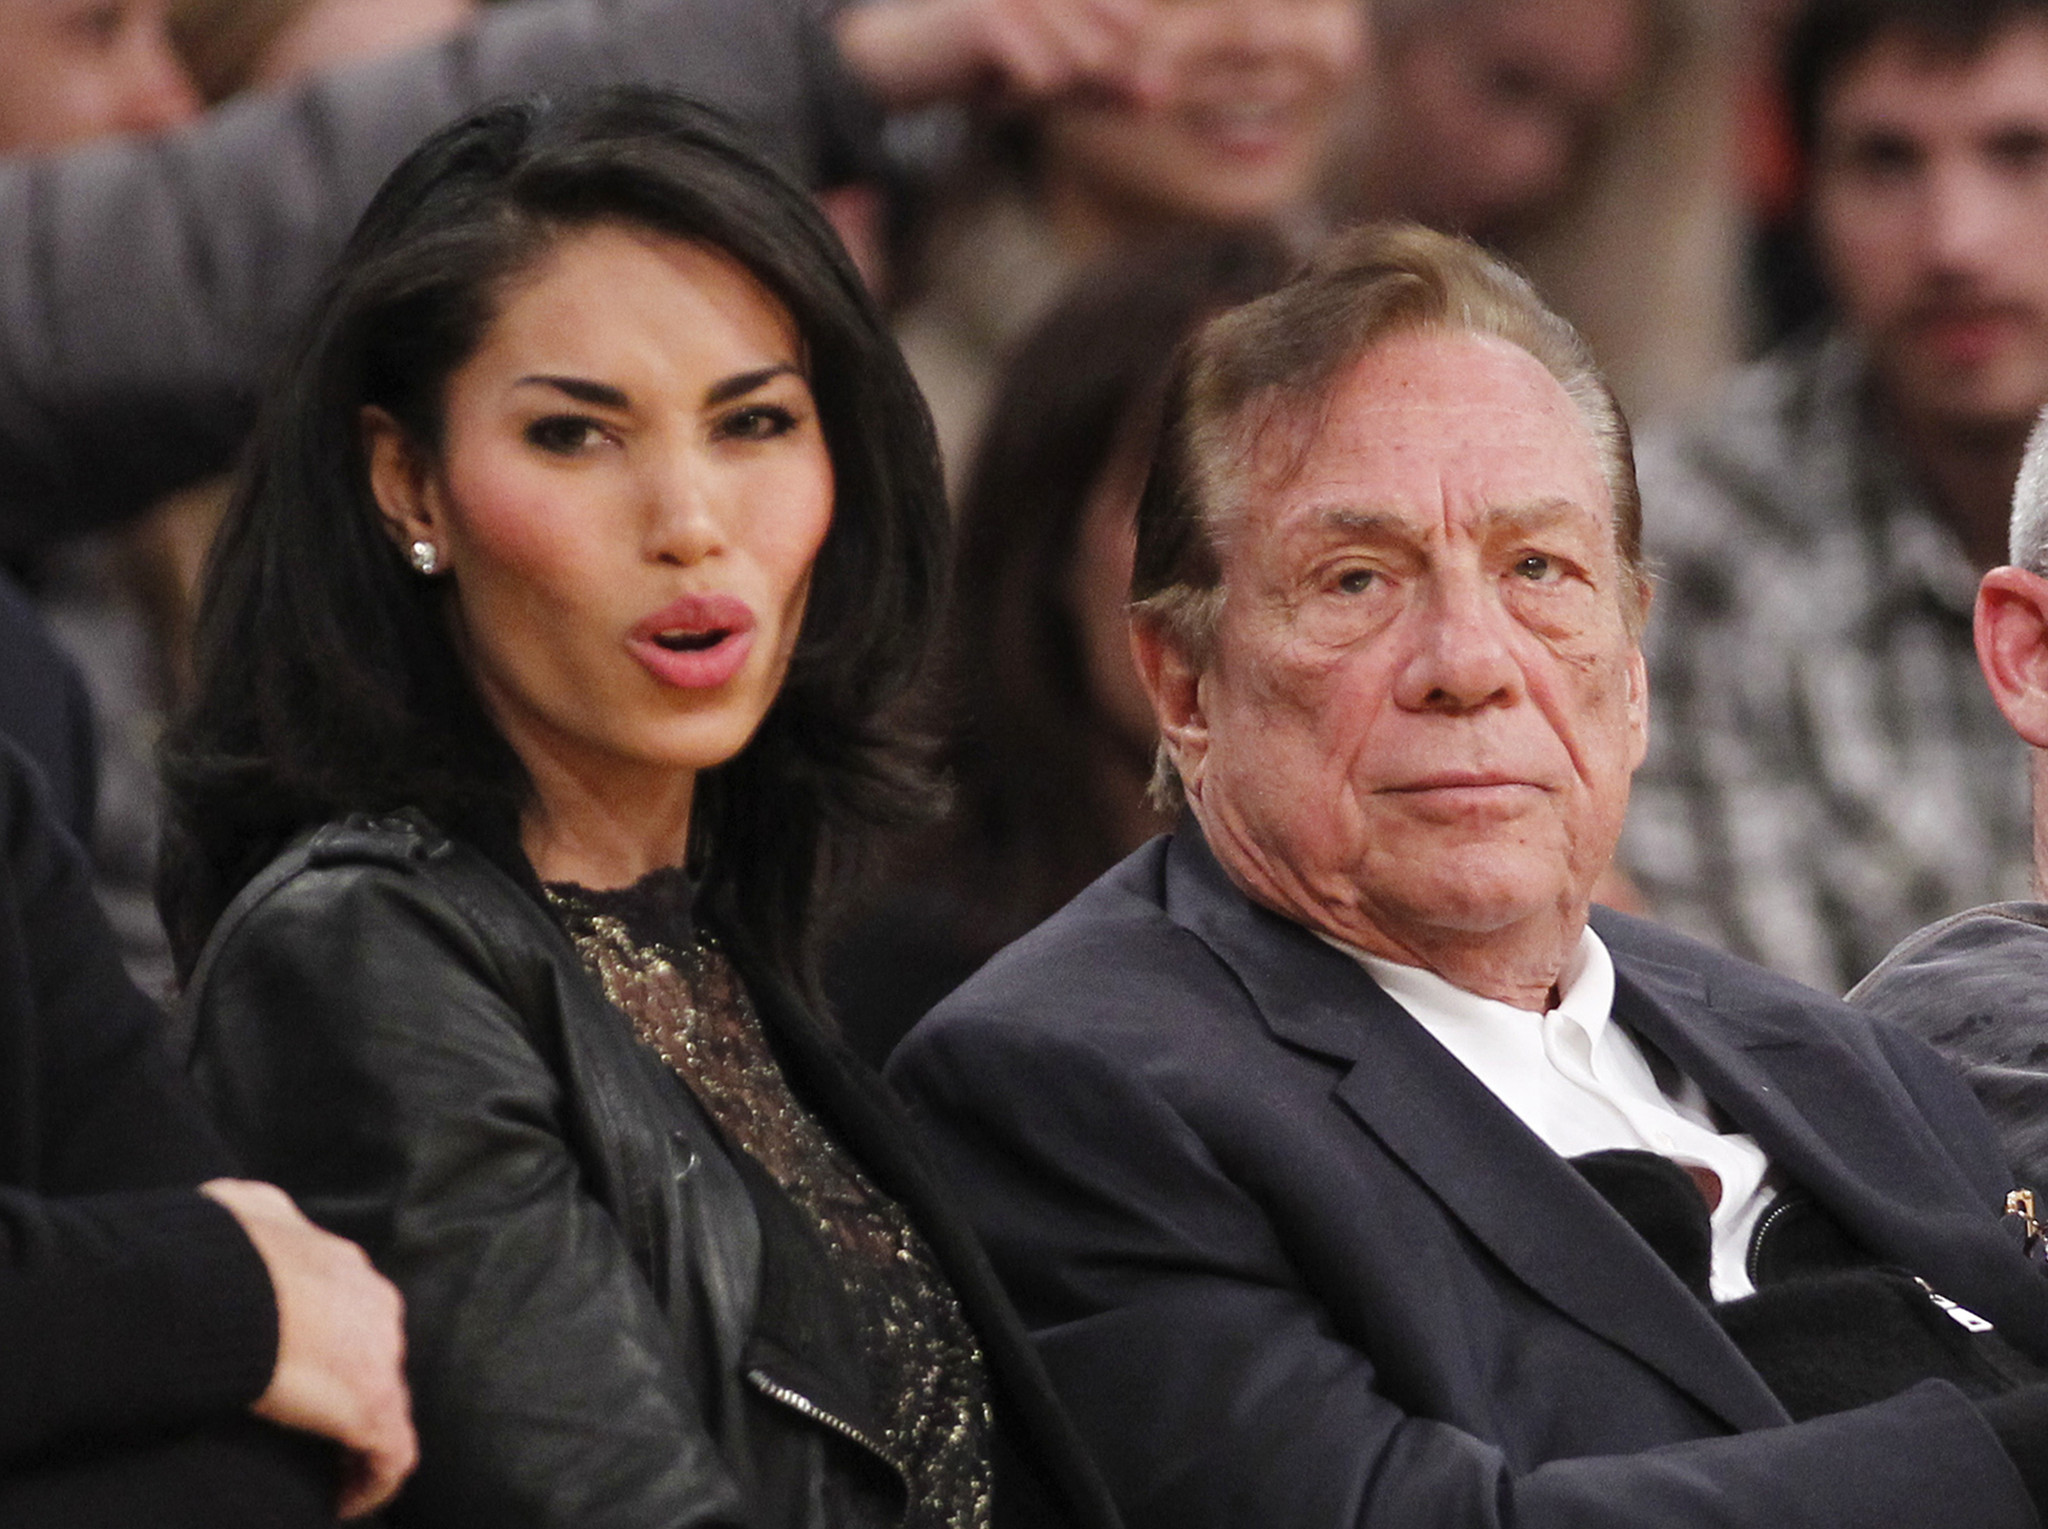 Donald Sterling sues TMZ, V. Stiviano over leaked tapes